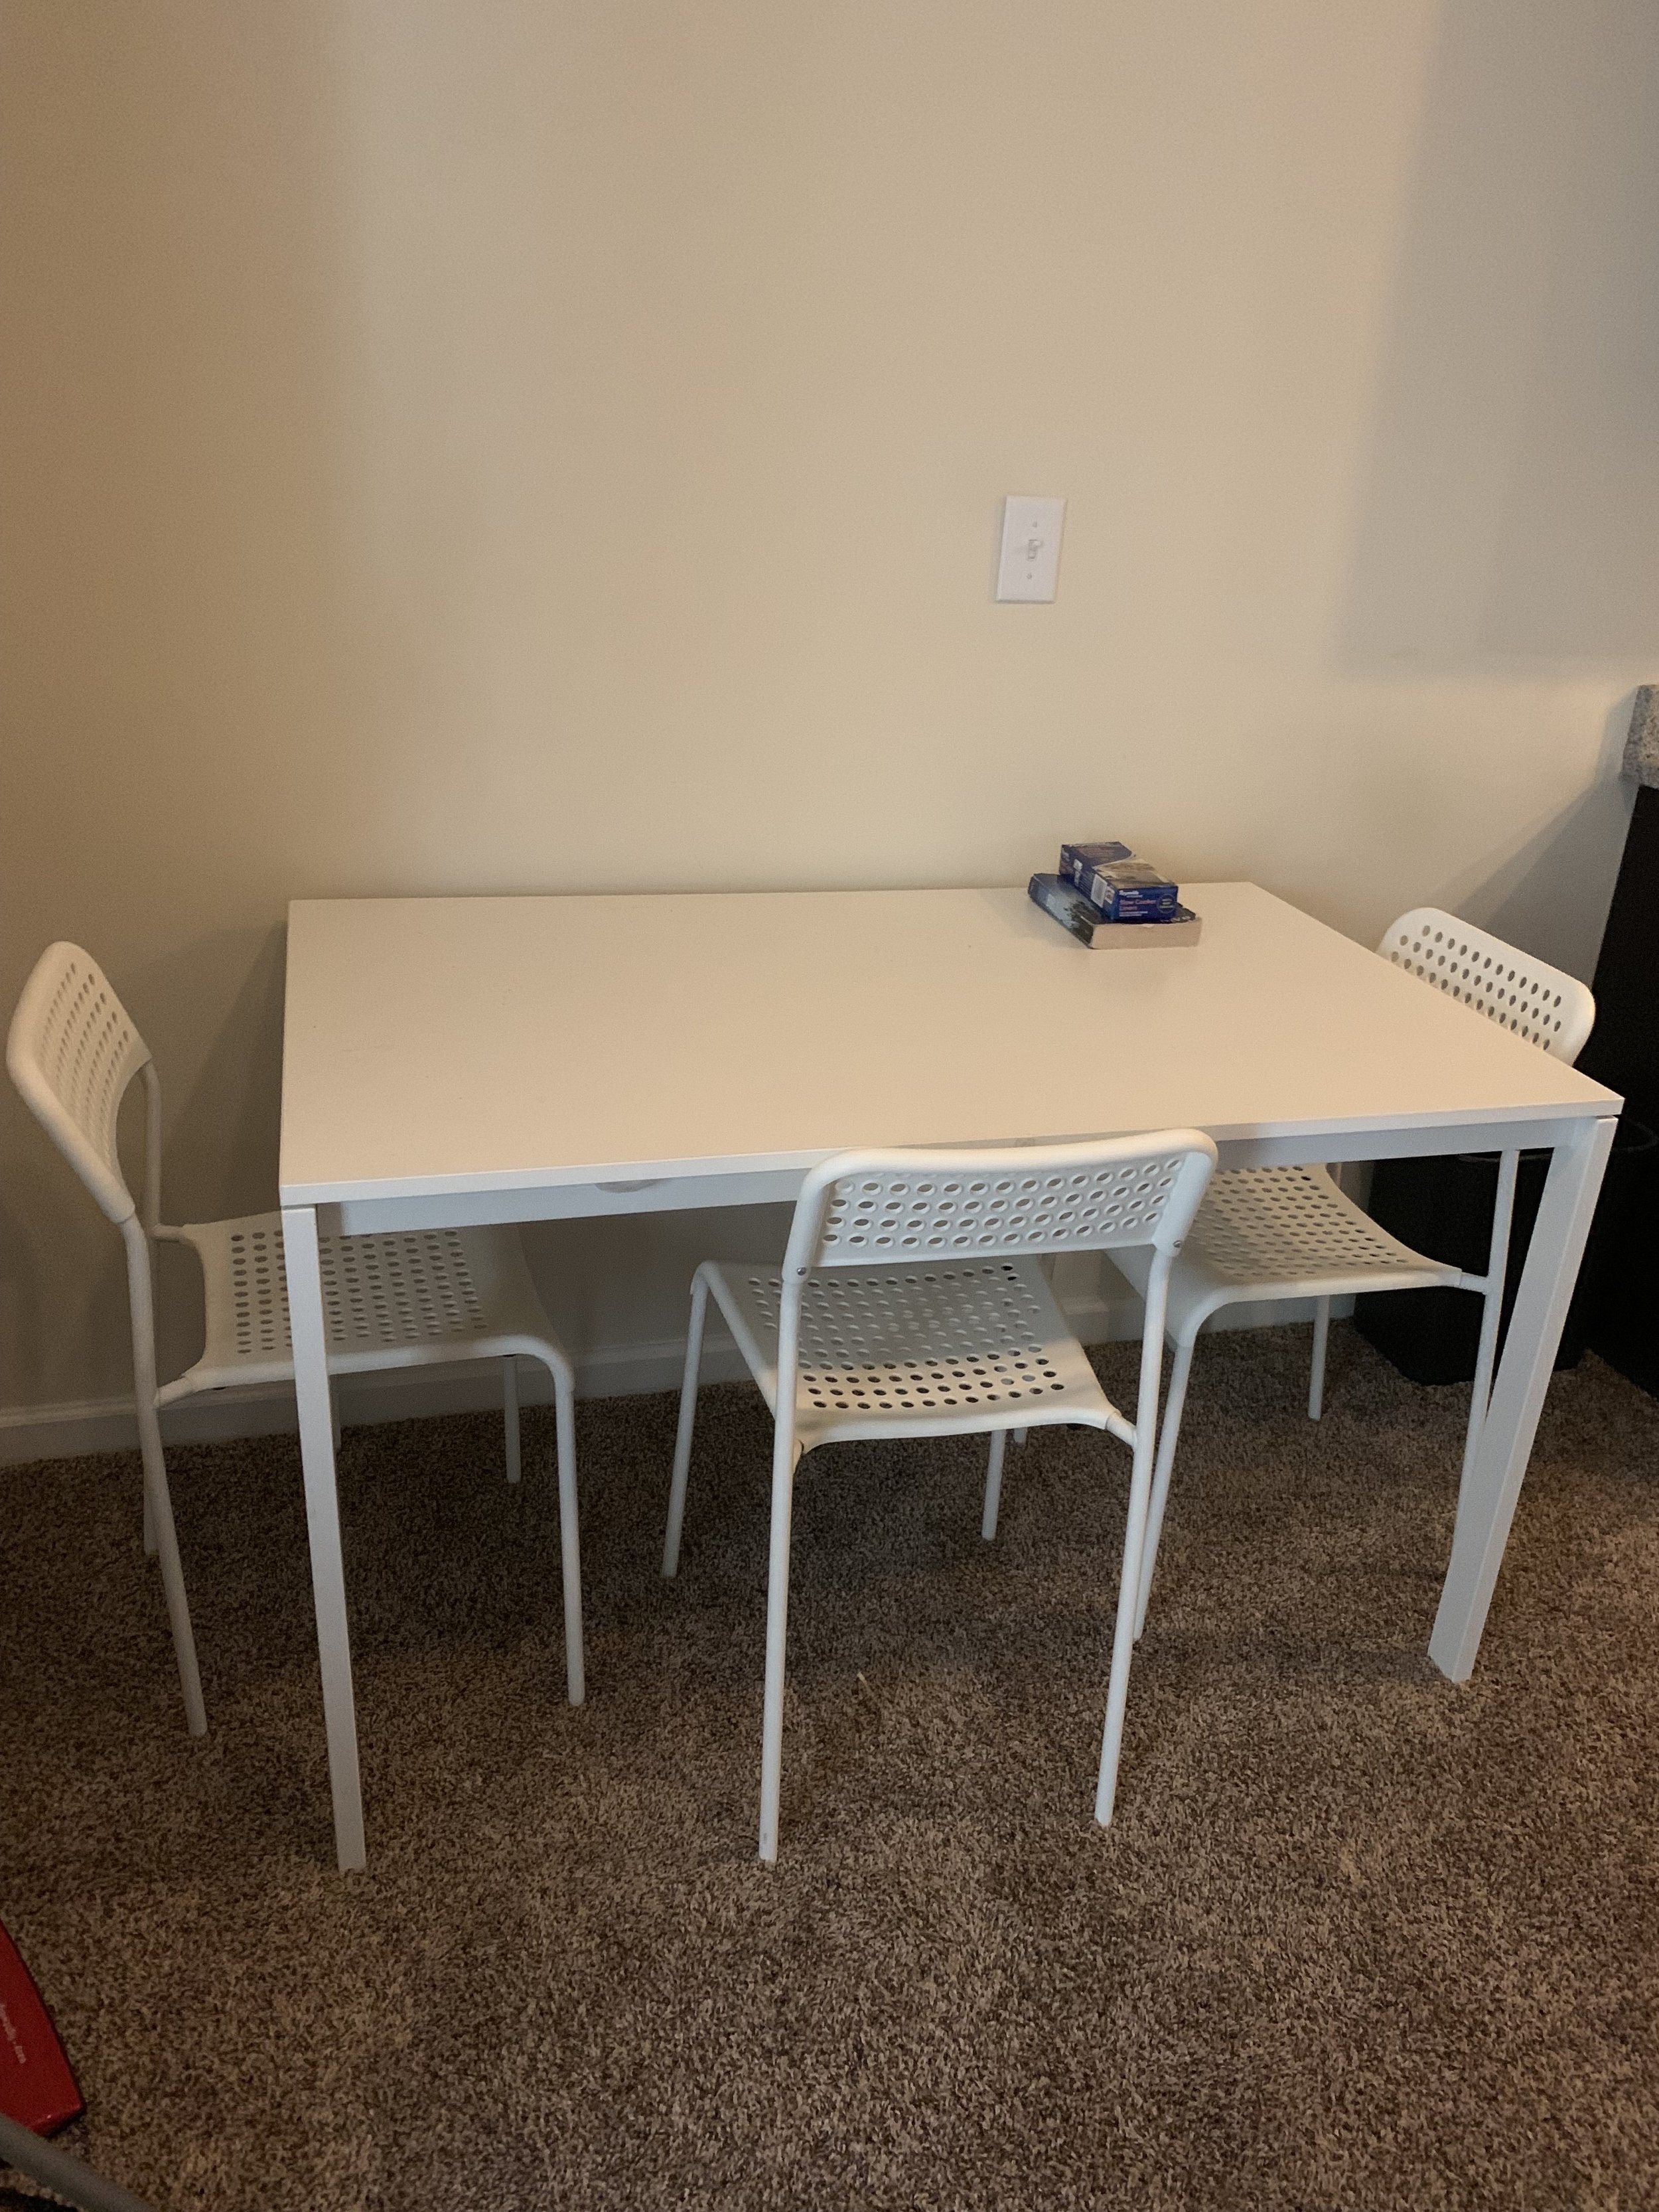 Table & Chairs $40